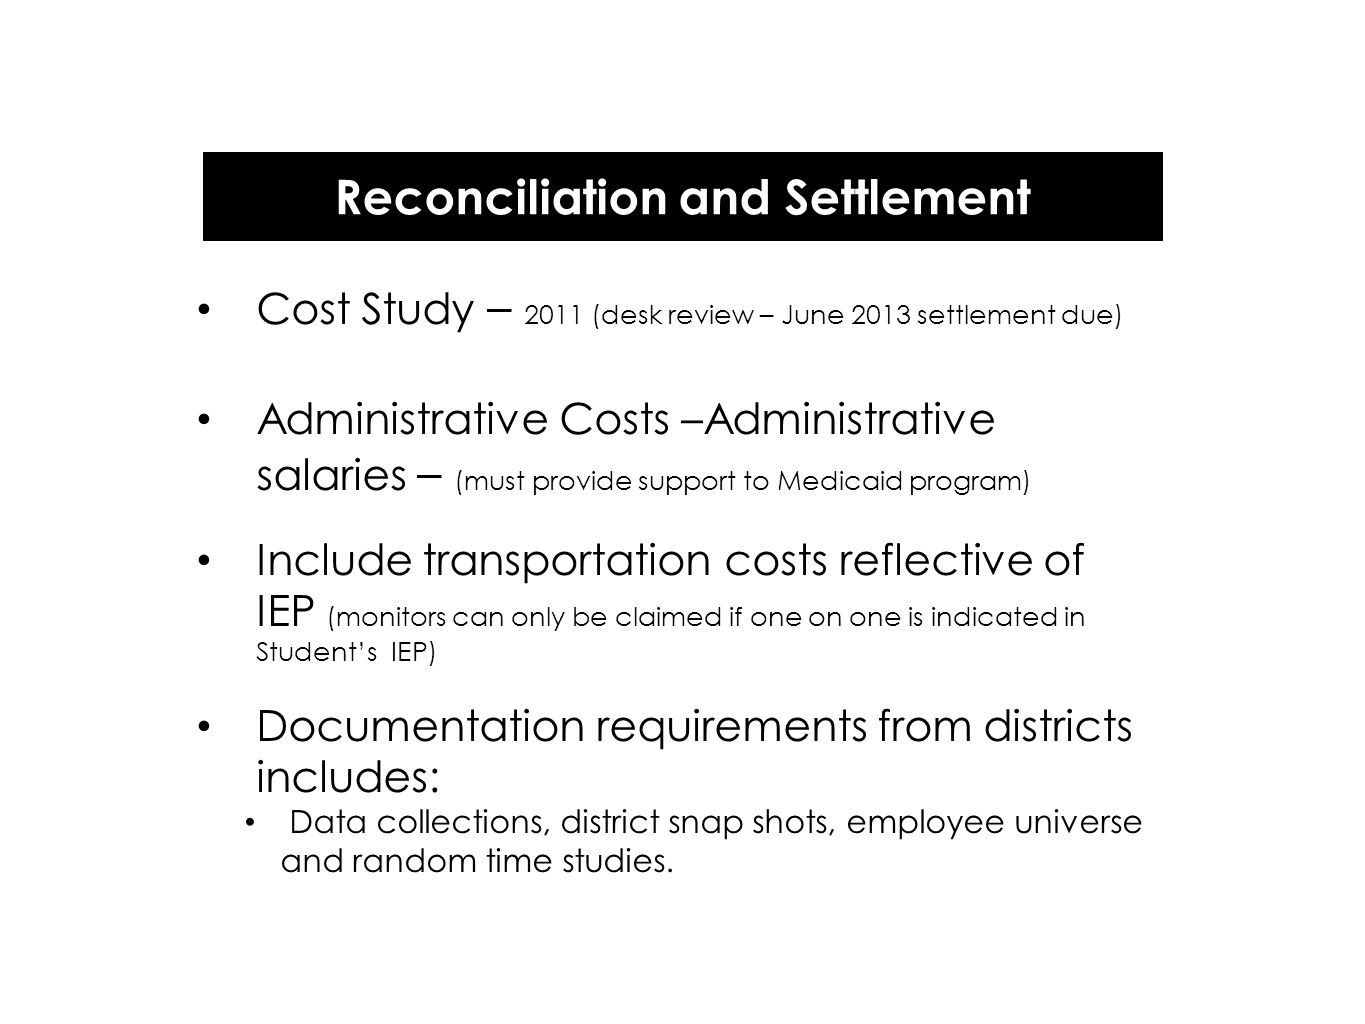 Reconciliation and Settlement Cost Study – 2011 (desk review – June 2013 settlement due) Administrative Costs –Administrative salaries – (must provide